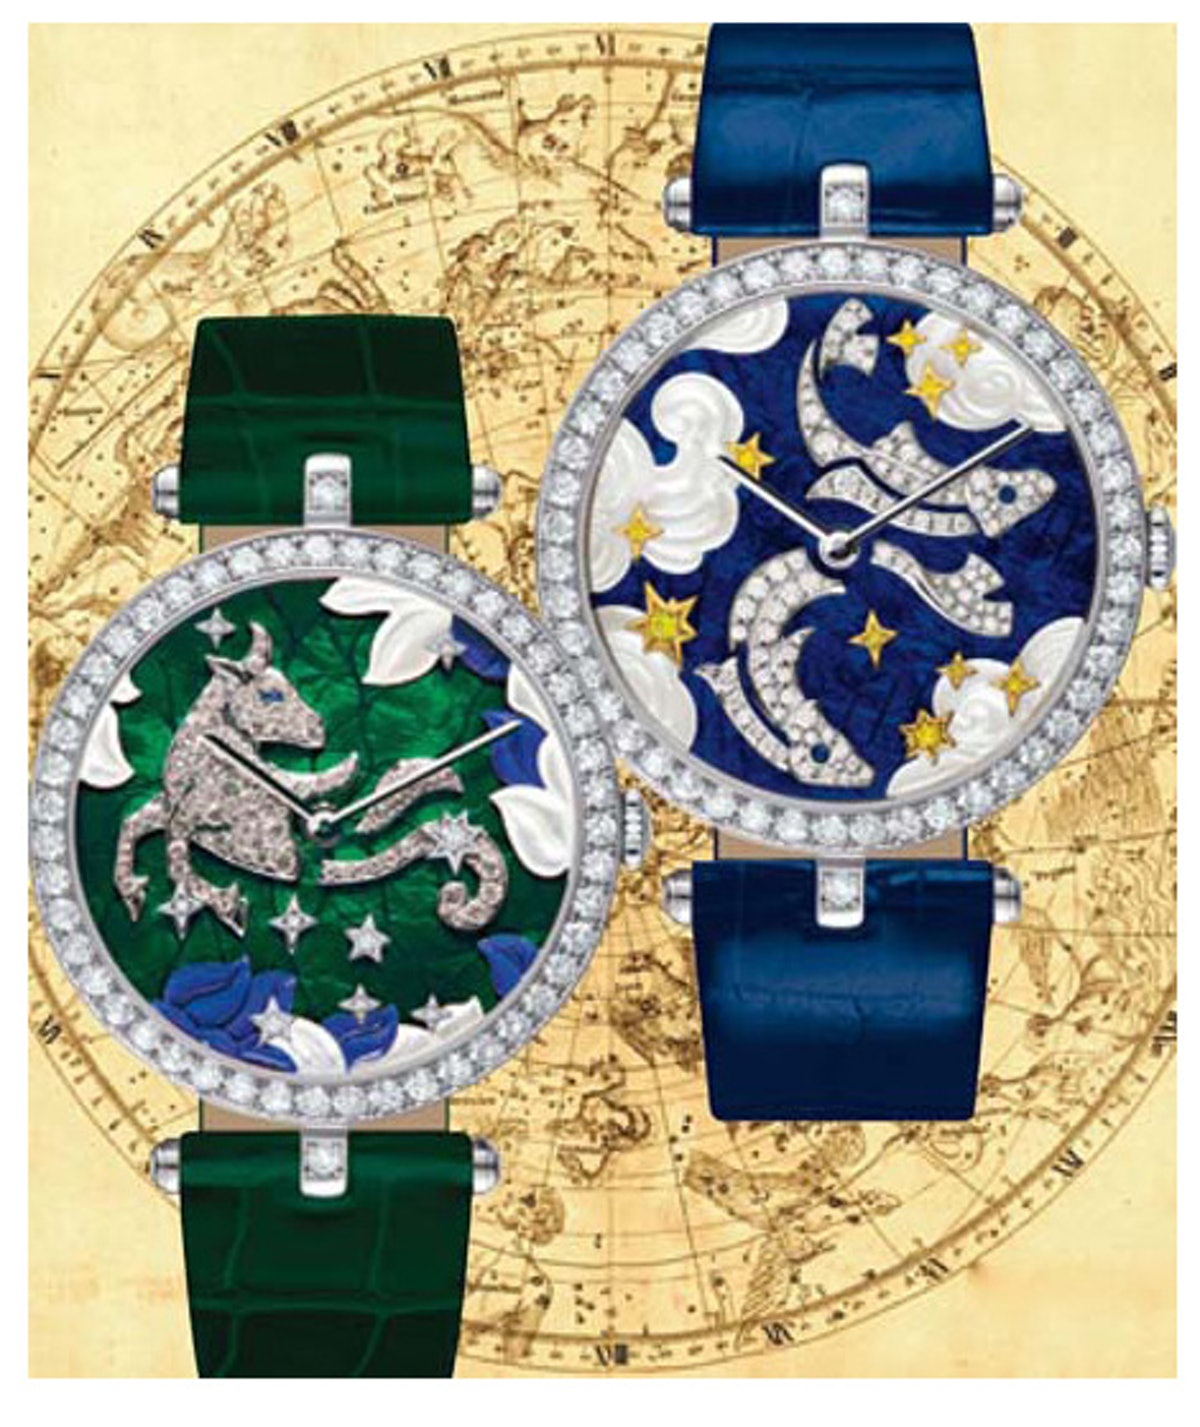 Van Cleef & Arpels's Poetry of Time collection